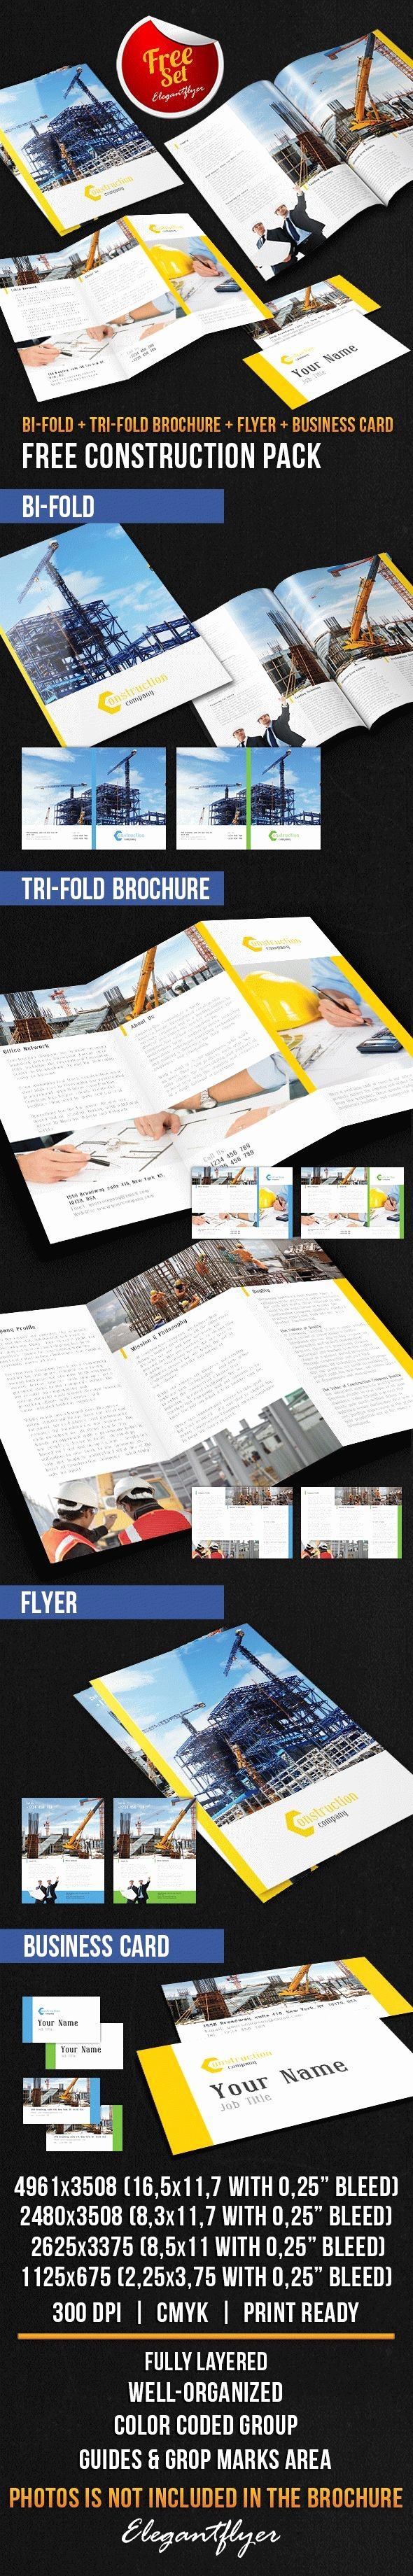 Construction Brochure Pack – Free Psd Template – by